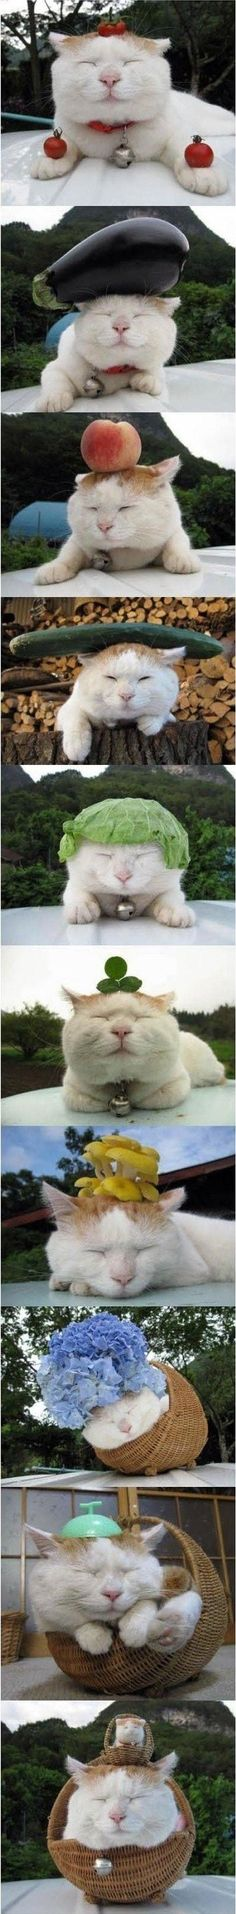 AHAHAHA! VEGETABLES ON DUH KITTEH!!! HAHAHA!!!